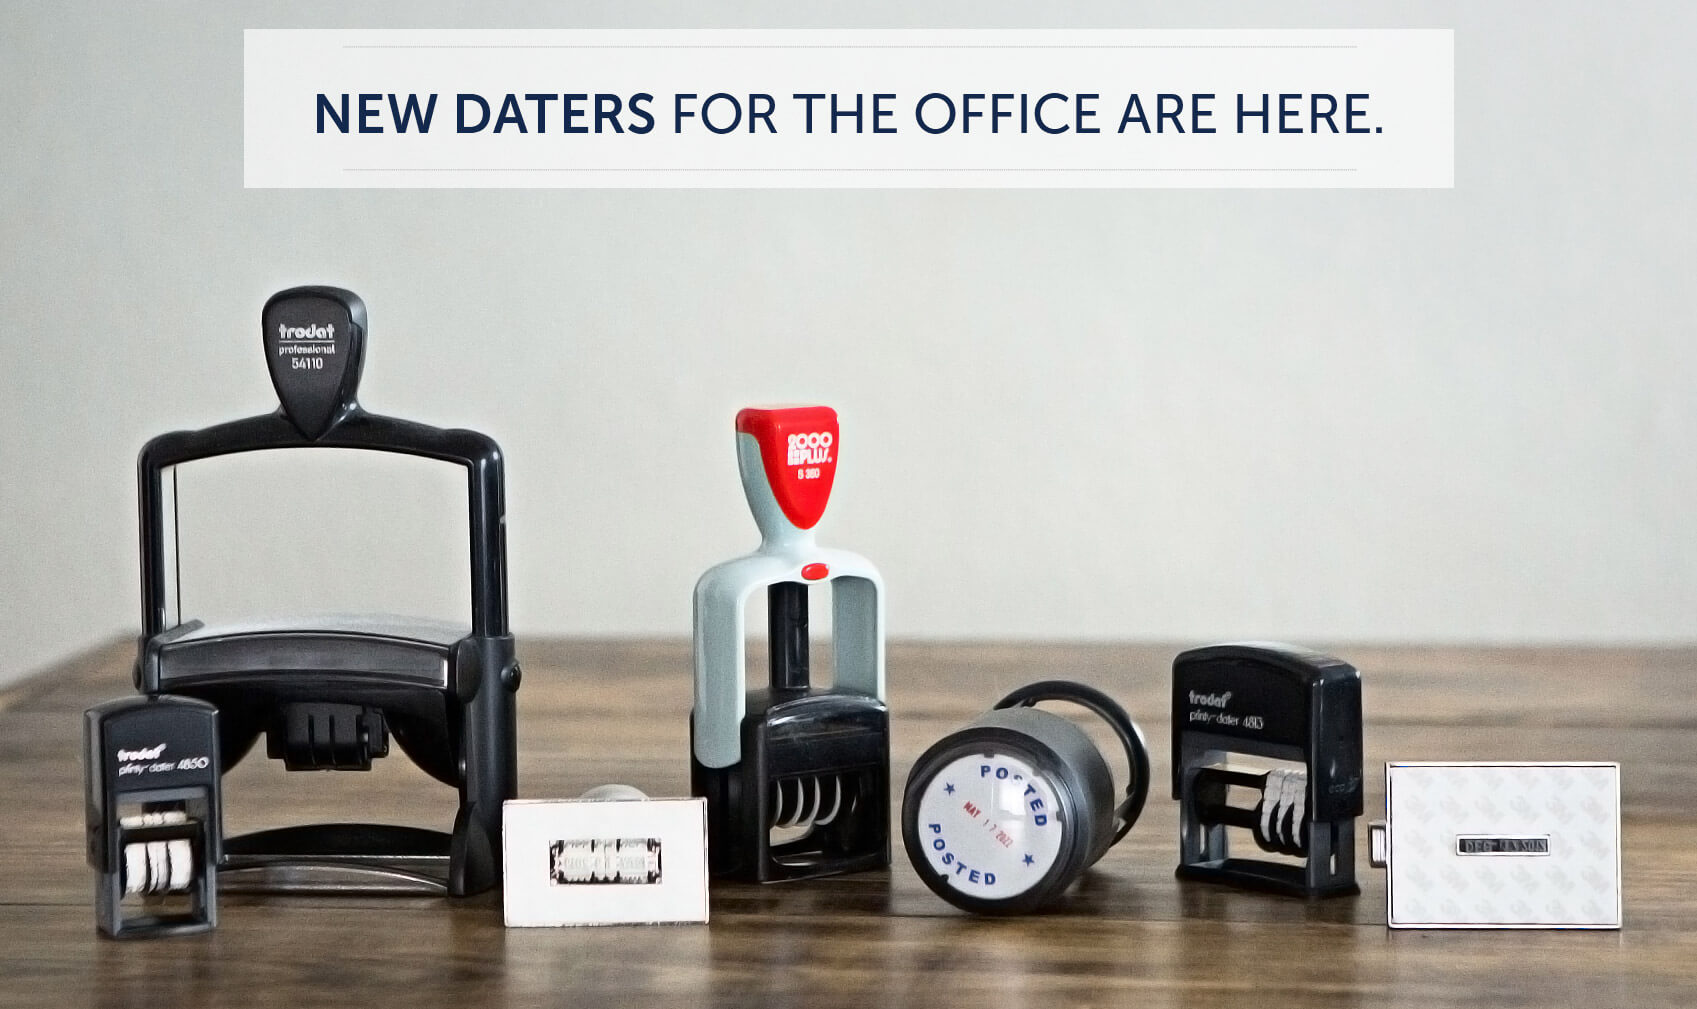 New Daters for the Office